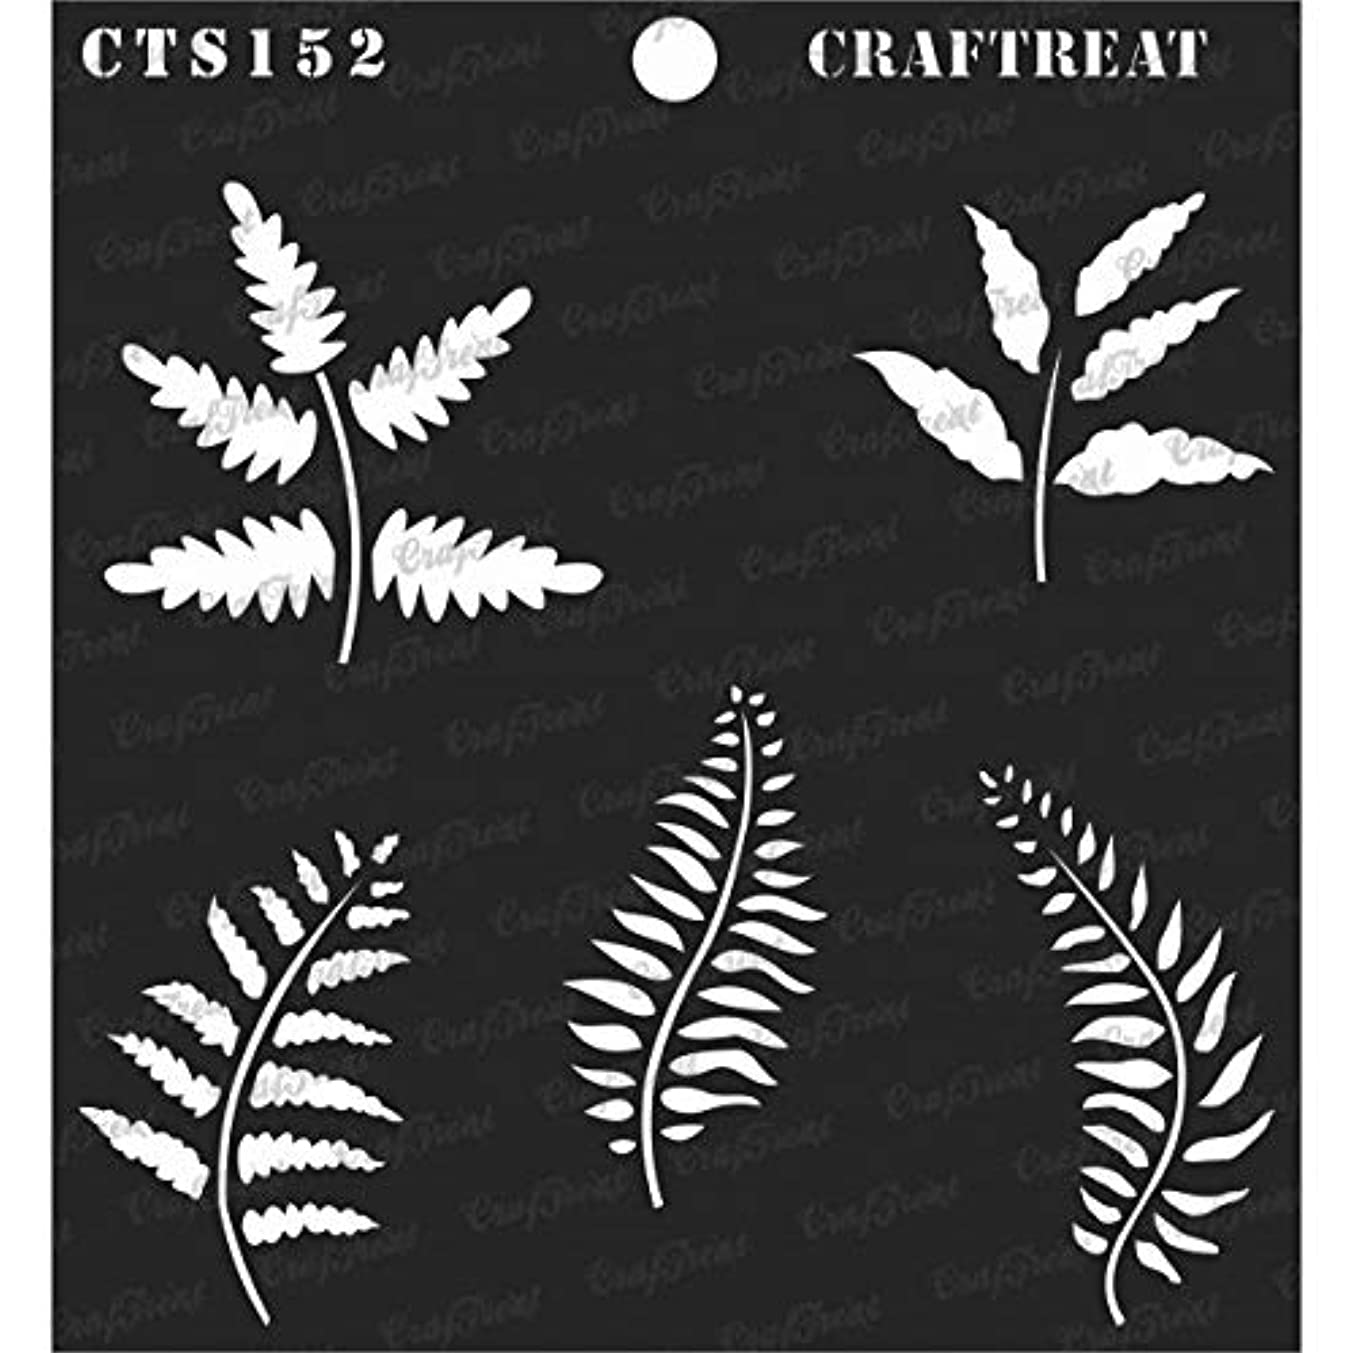 CrafTreat Stencil - Leaves2   Reusable Painting Template for Journal, Notebook, Home Decor, Crafting, DIY Albums, Scrapbook and Printing on Paper, Floor, Wall, Tile, Fabric, Wood 6